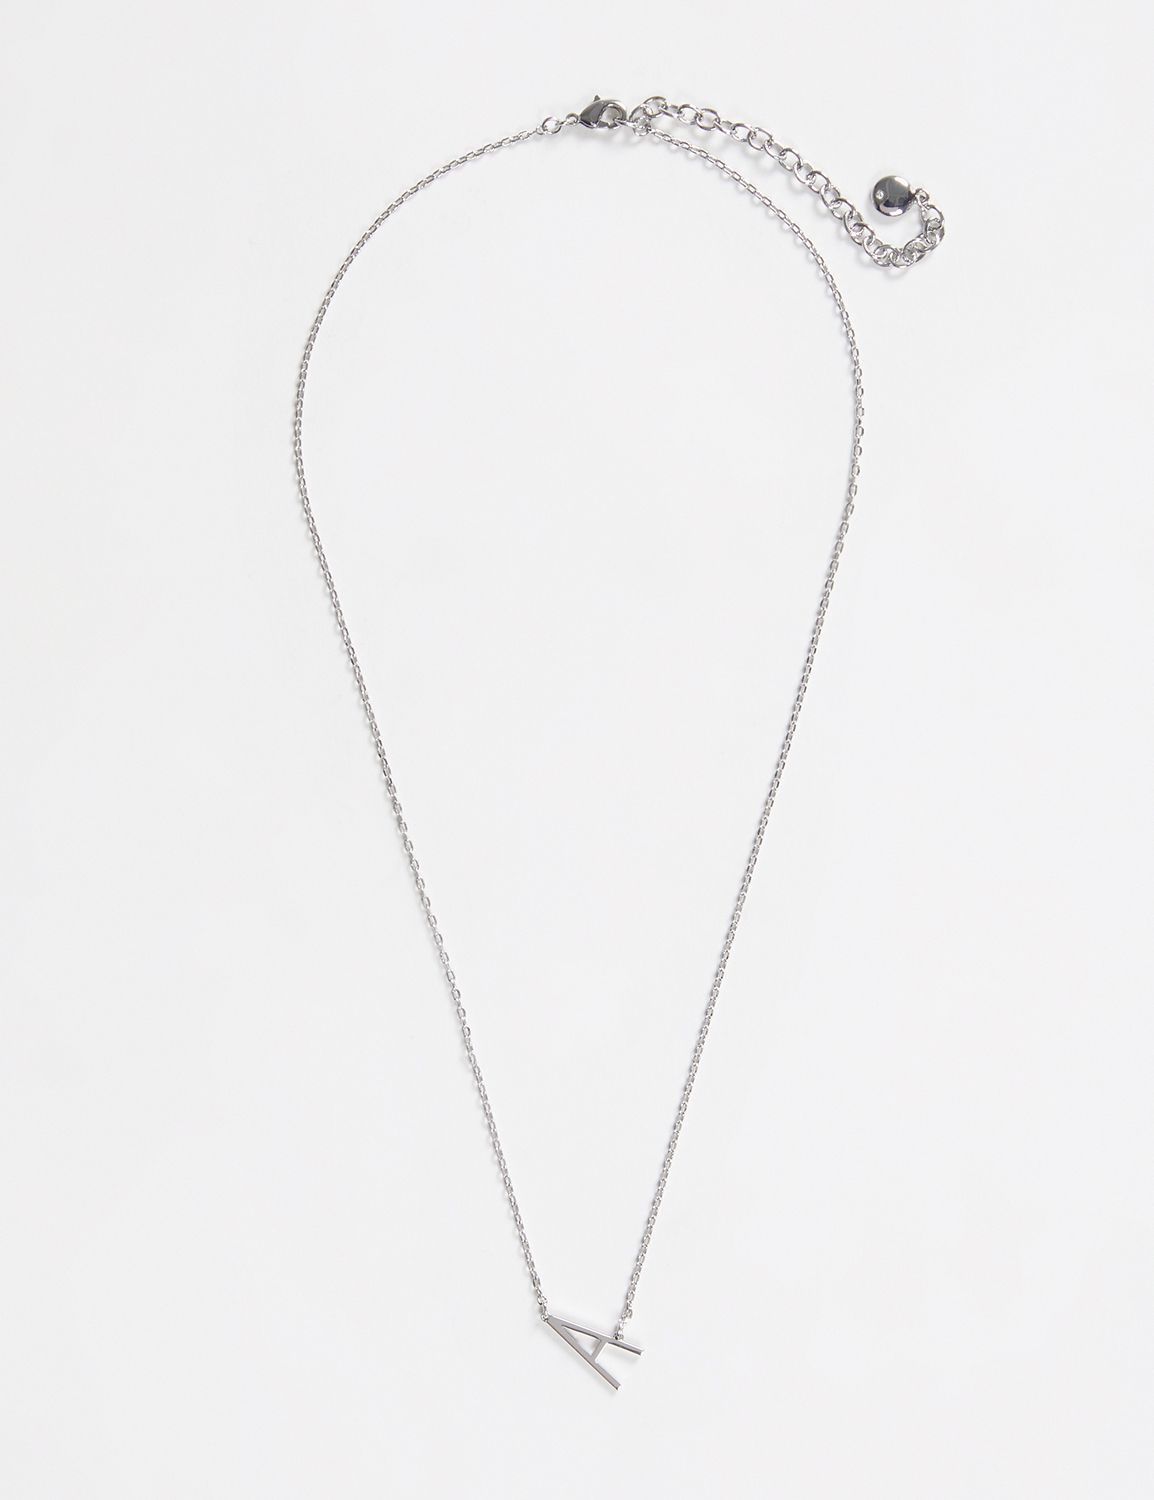 Lane Bryant Womens Initial Necklace ONESZ Silver A